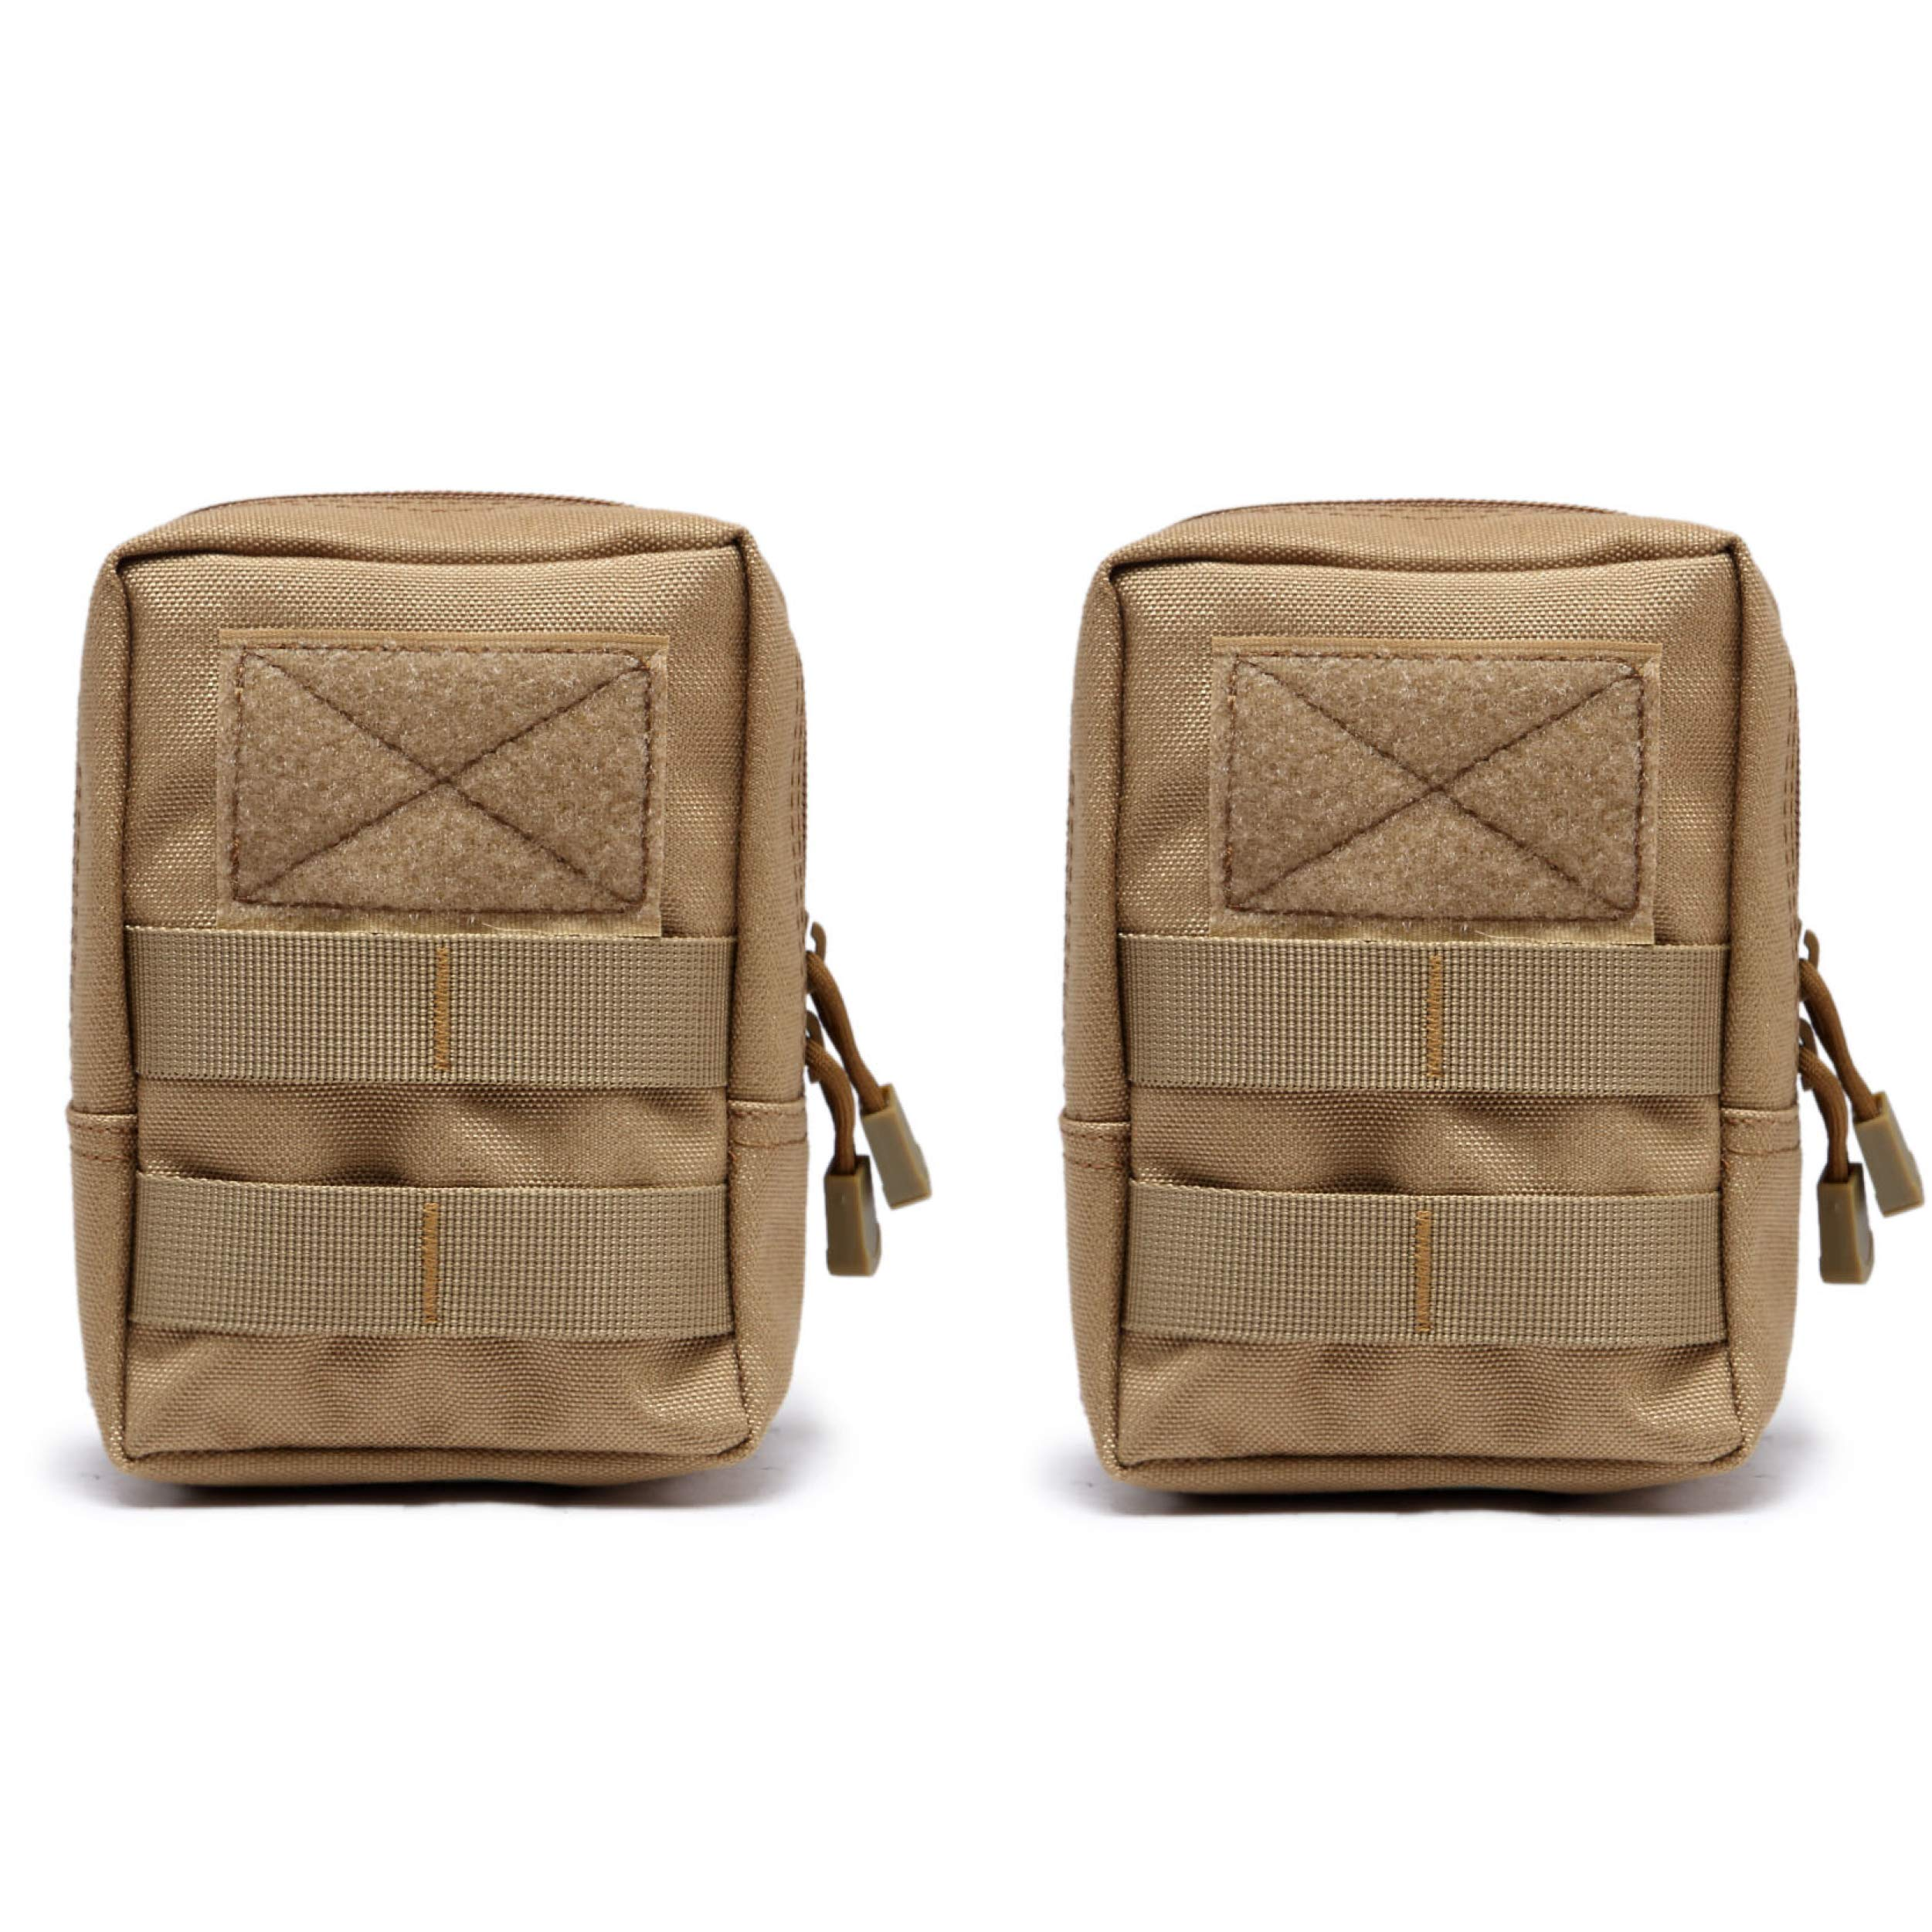 TRIWONDER Tactical Molle Bag Outdoor Accessory Bag Utility EDC Pouch for Backpack Vest Military Airsoft Shooting Storage Bag